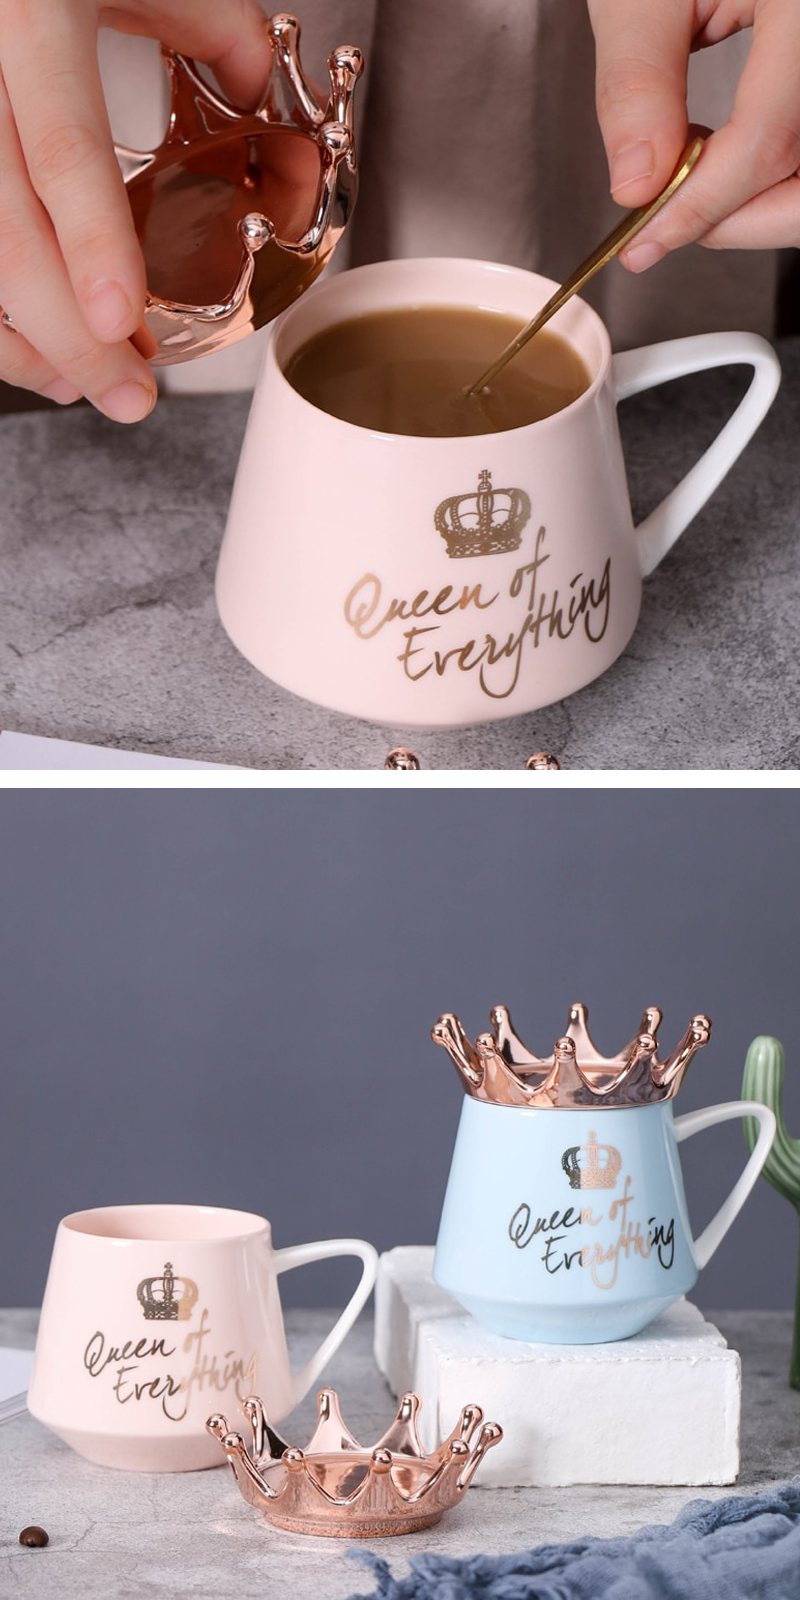 , Enter to Win: Queen Of Everything Themed Coffee Mug